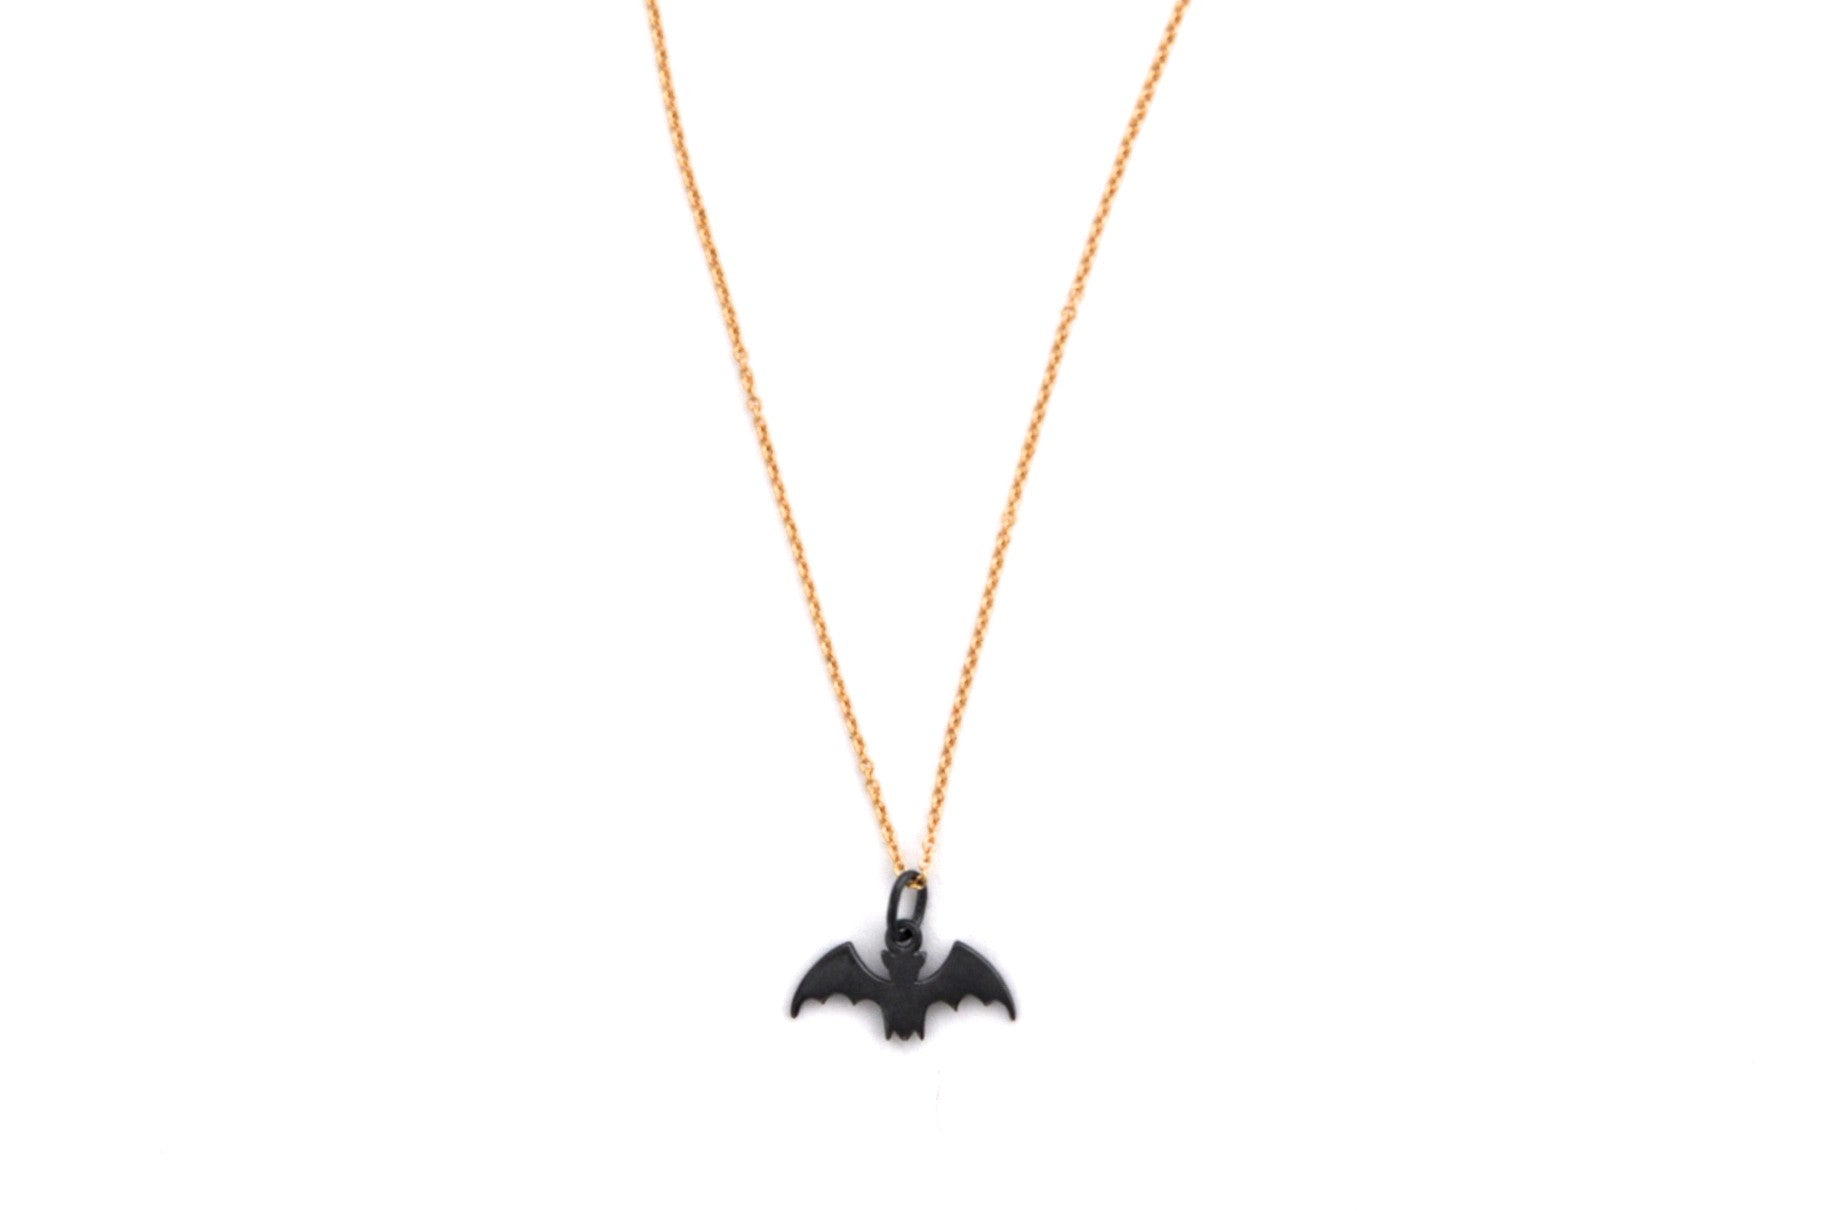 necklace / silver tiny BAT charm on fine chain